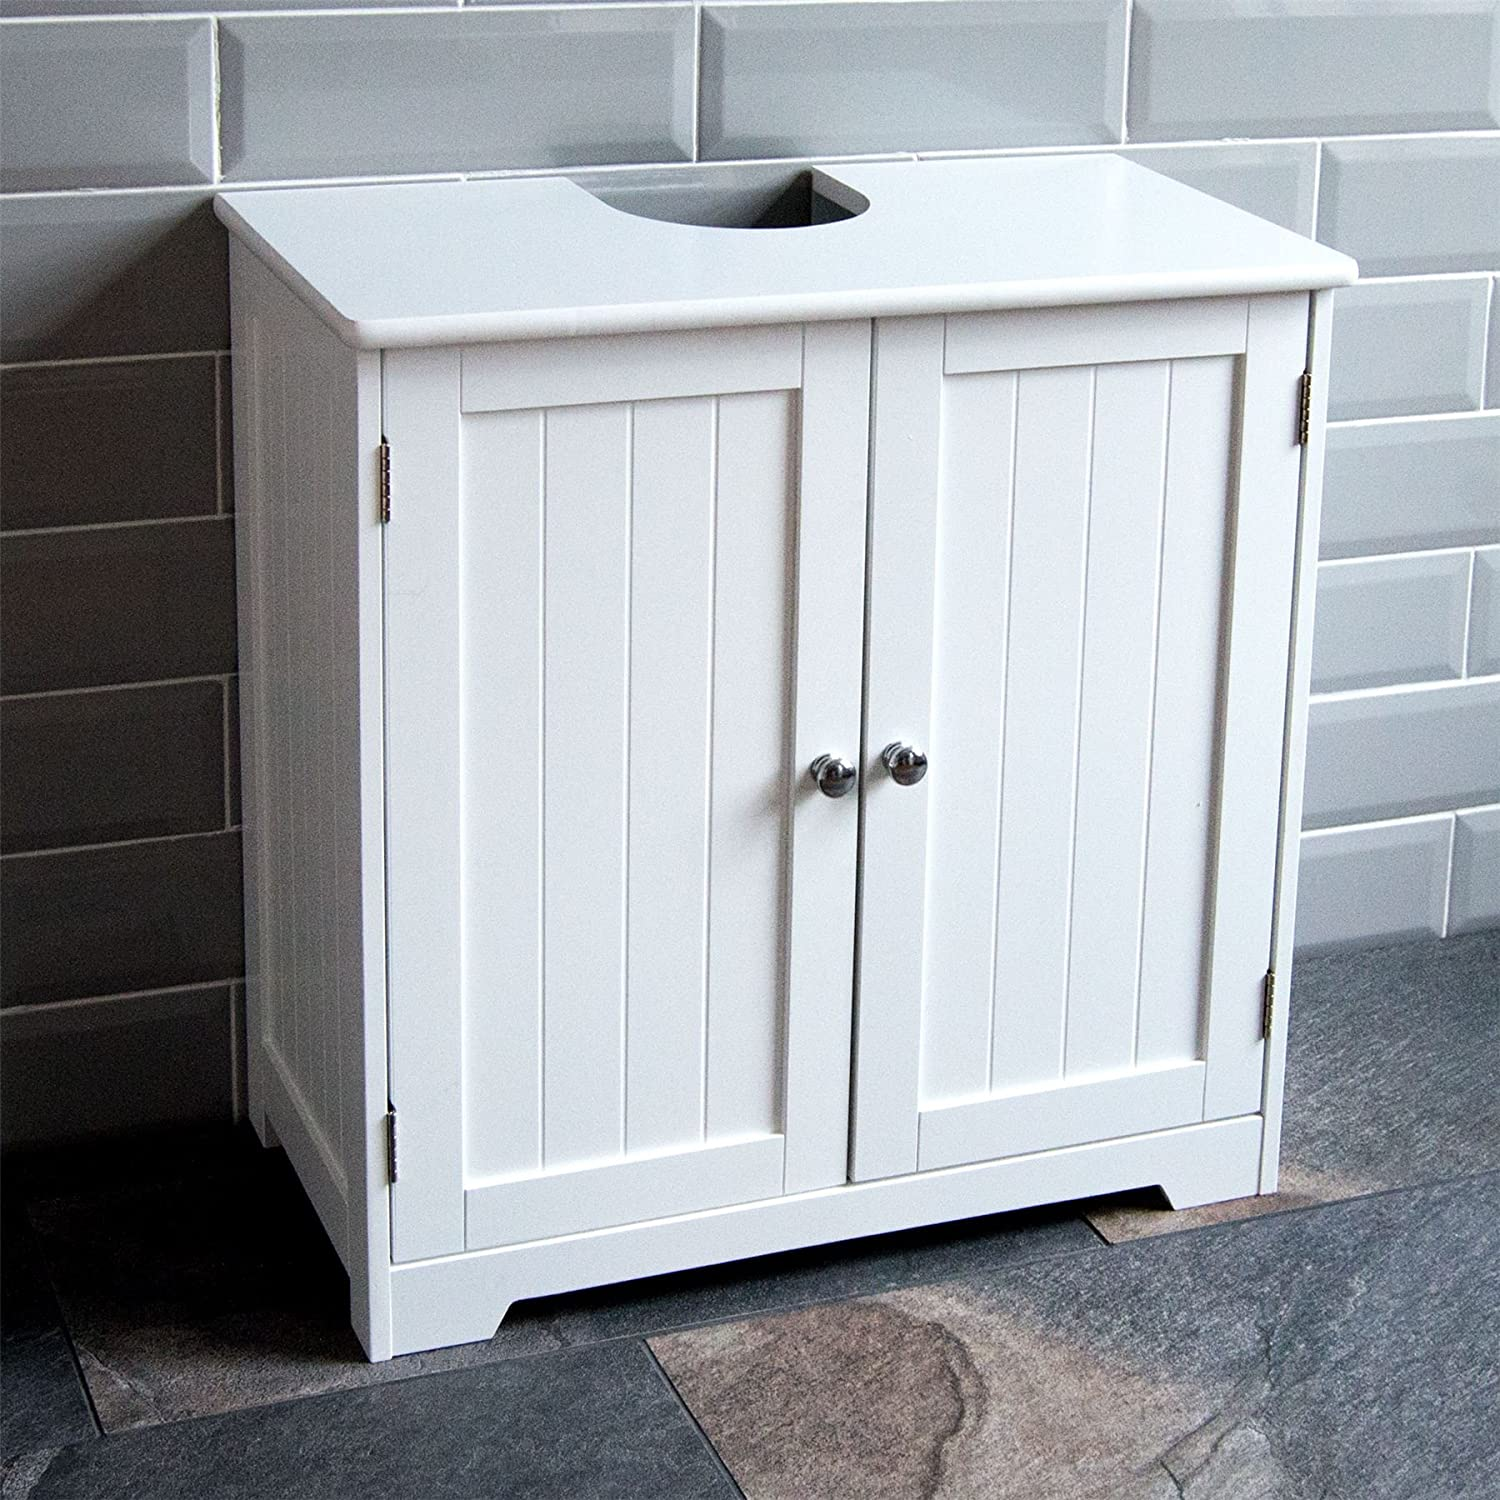 Bath Vida Priano Under Sink Bathroom Cabinet Floor Standing Storage Cupboard Basin Unit White Amazon Co Uk Kitchen Home